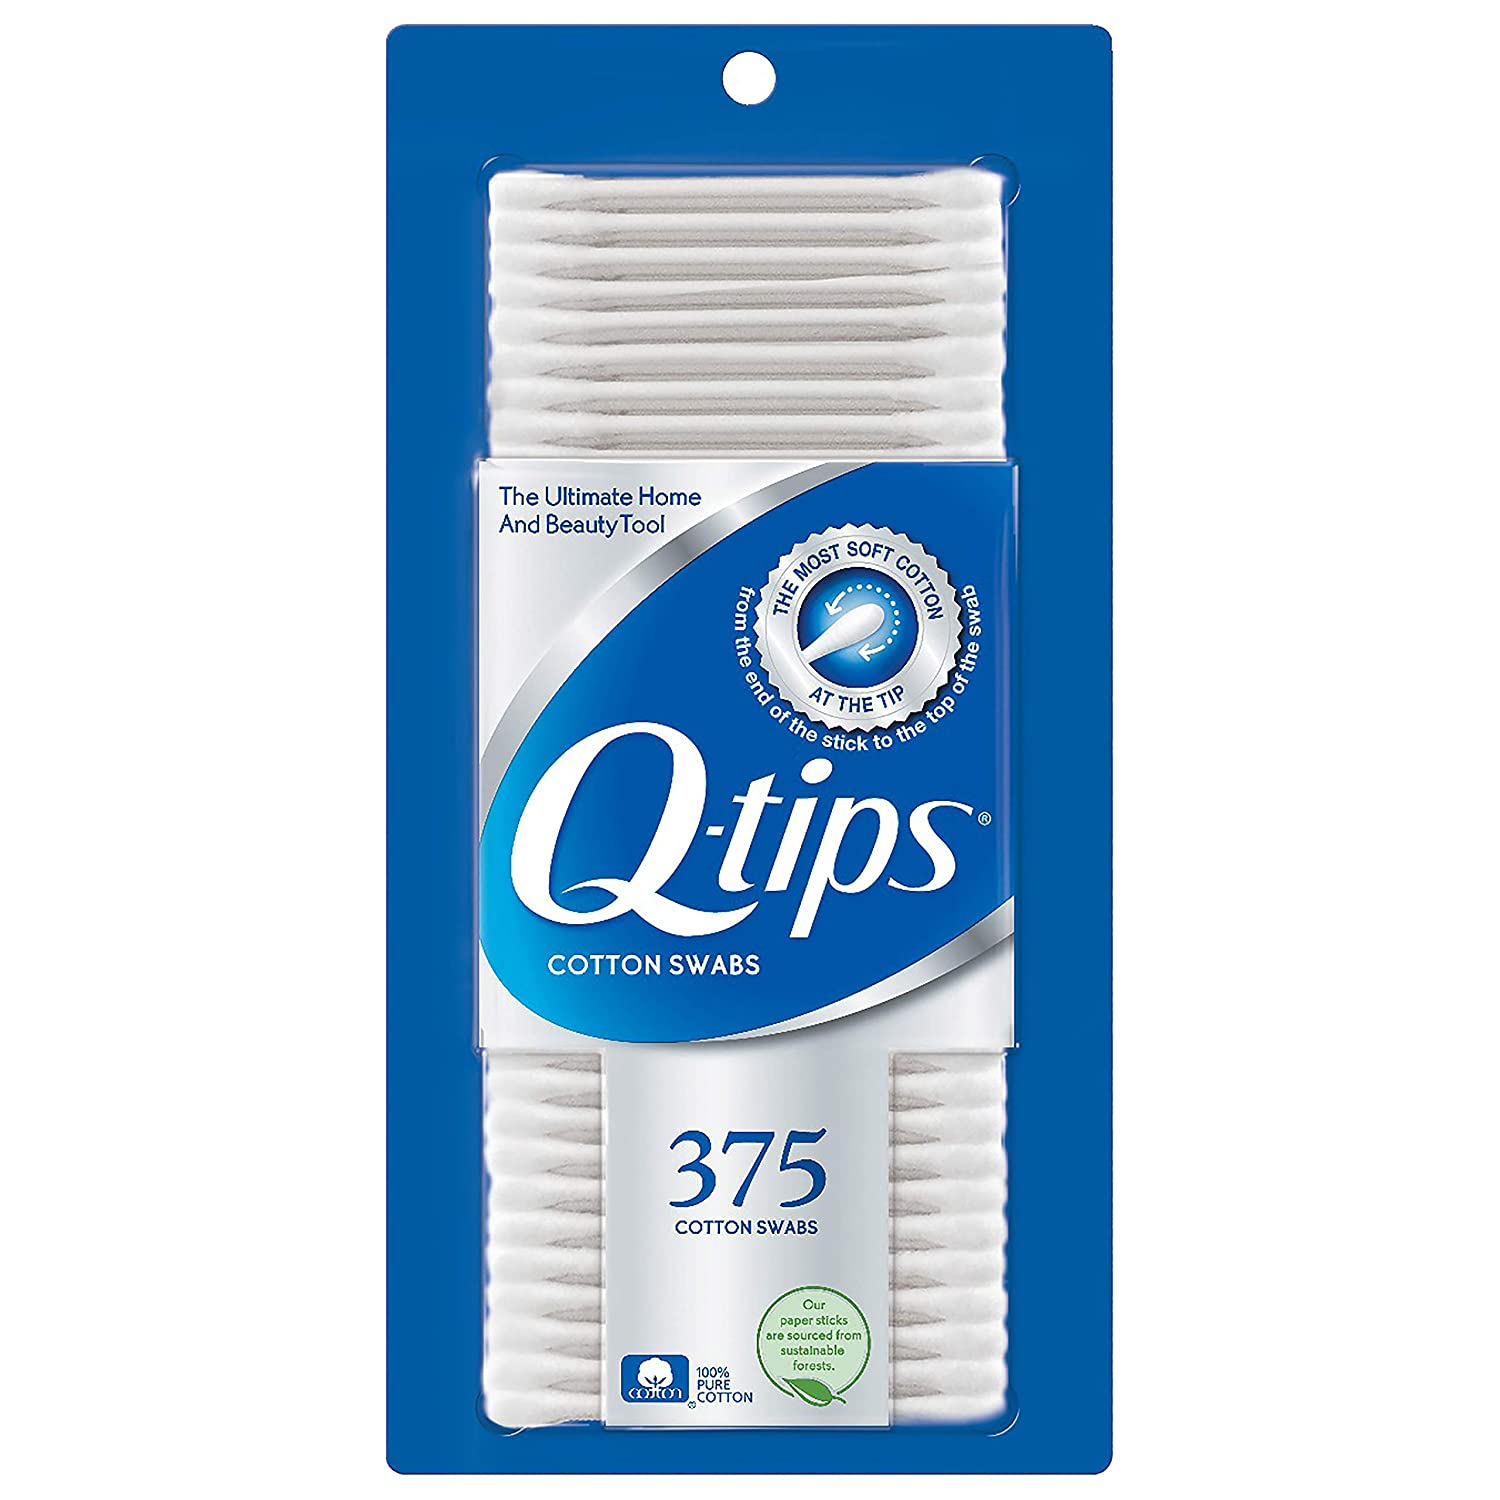 Q-Tips Cotton Swabs 375-Count by Q-Tips